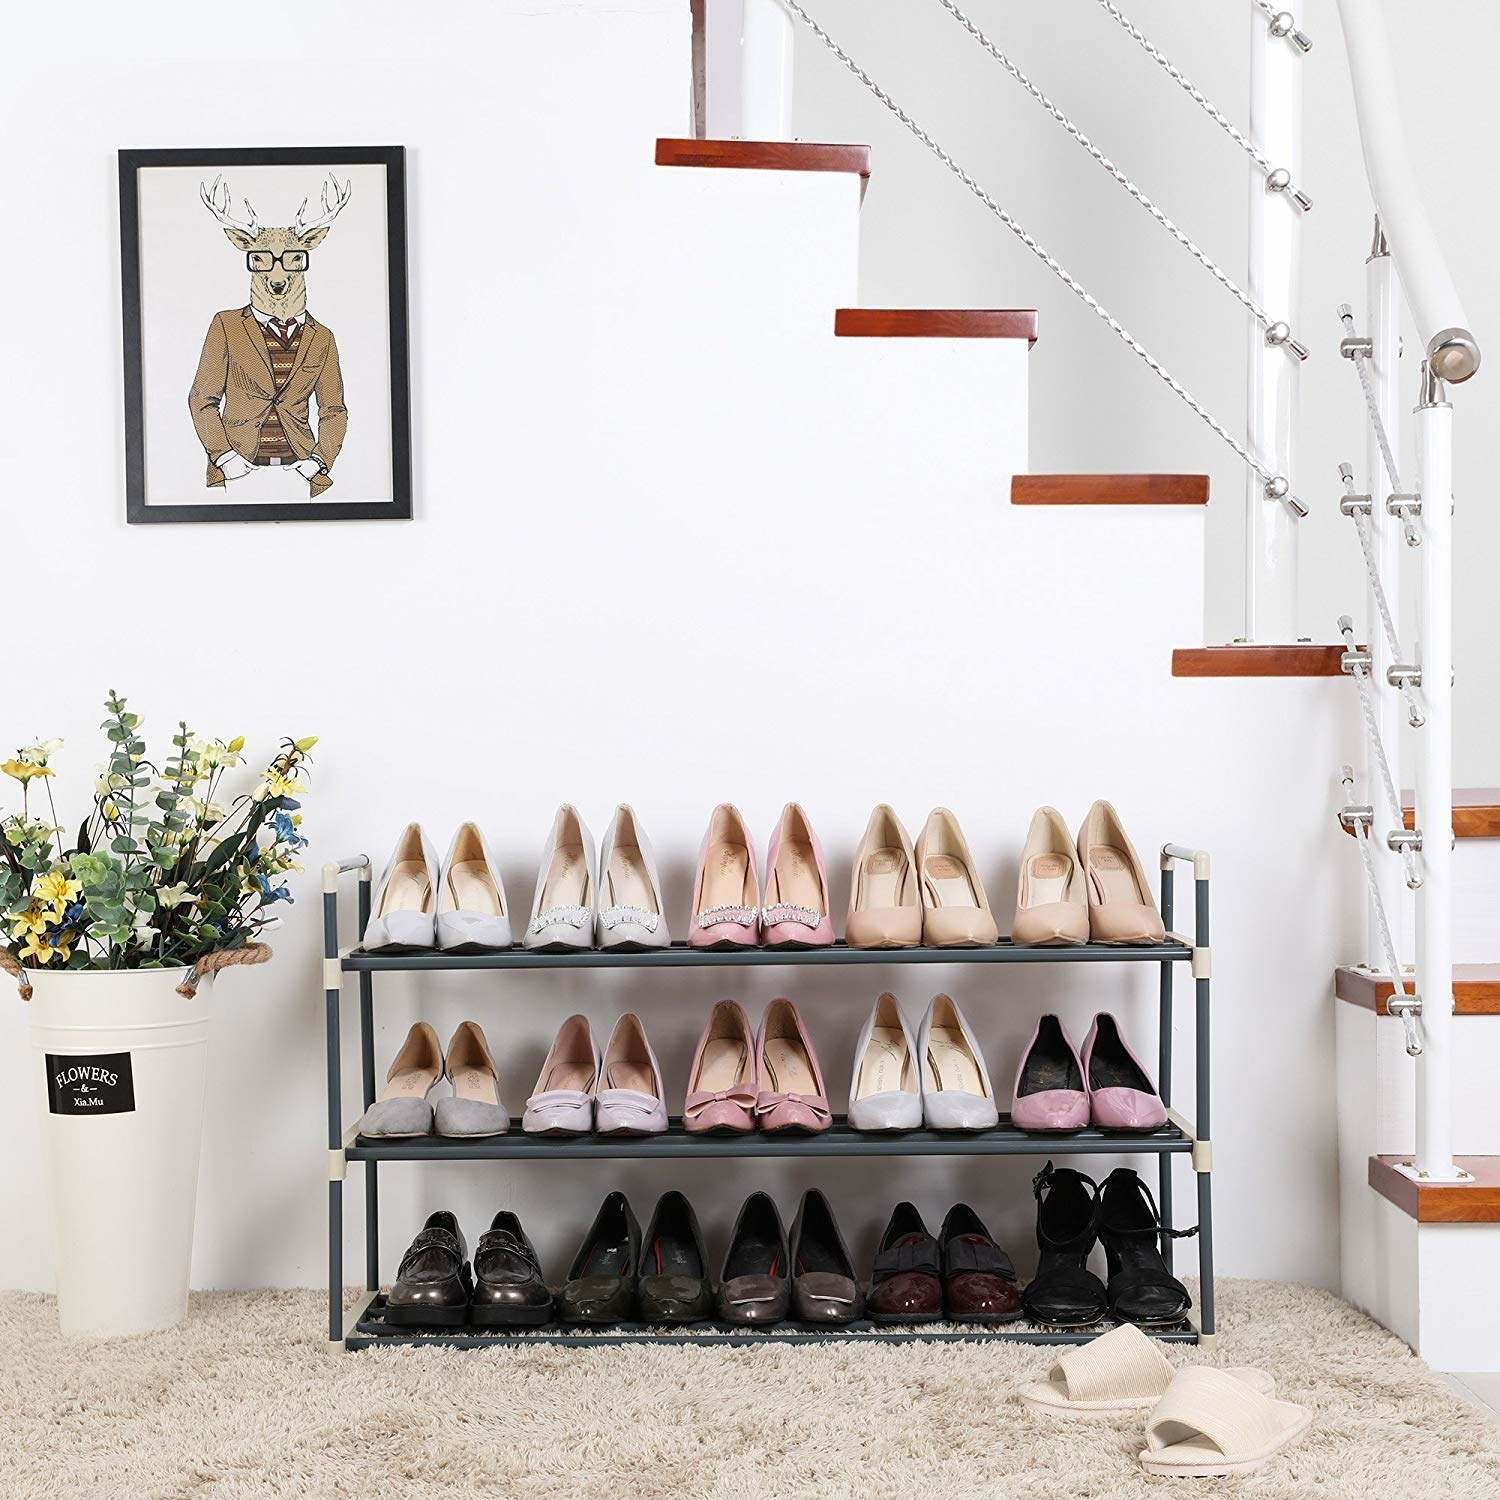 The organizer with 15 pairs of shoes fitting comfortably